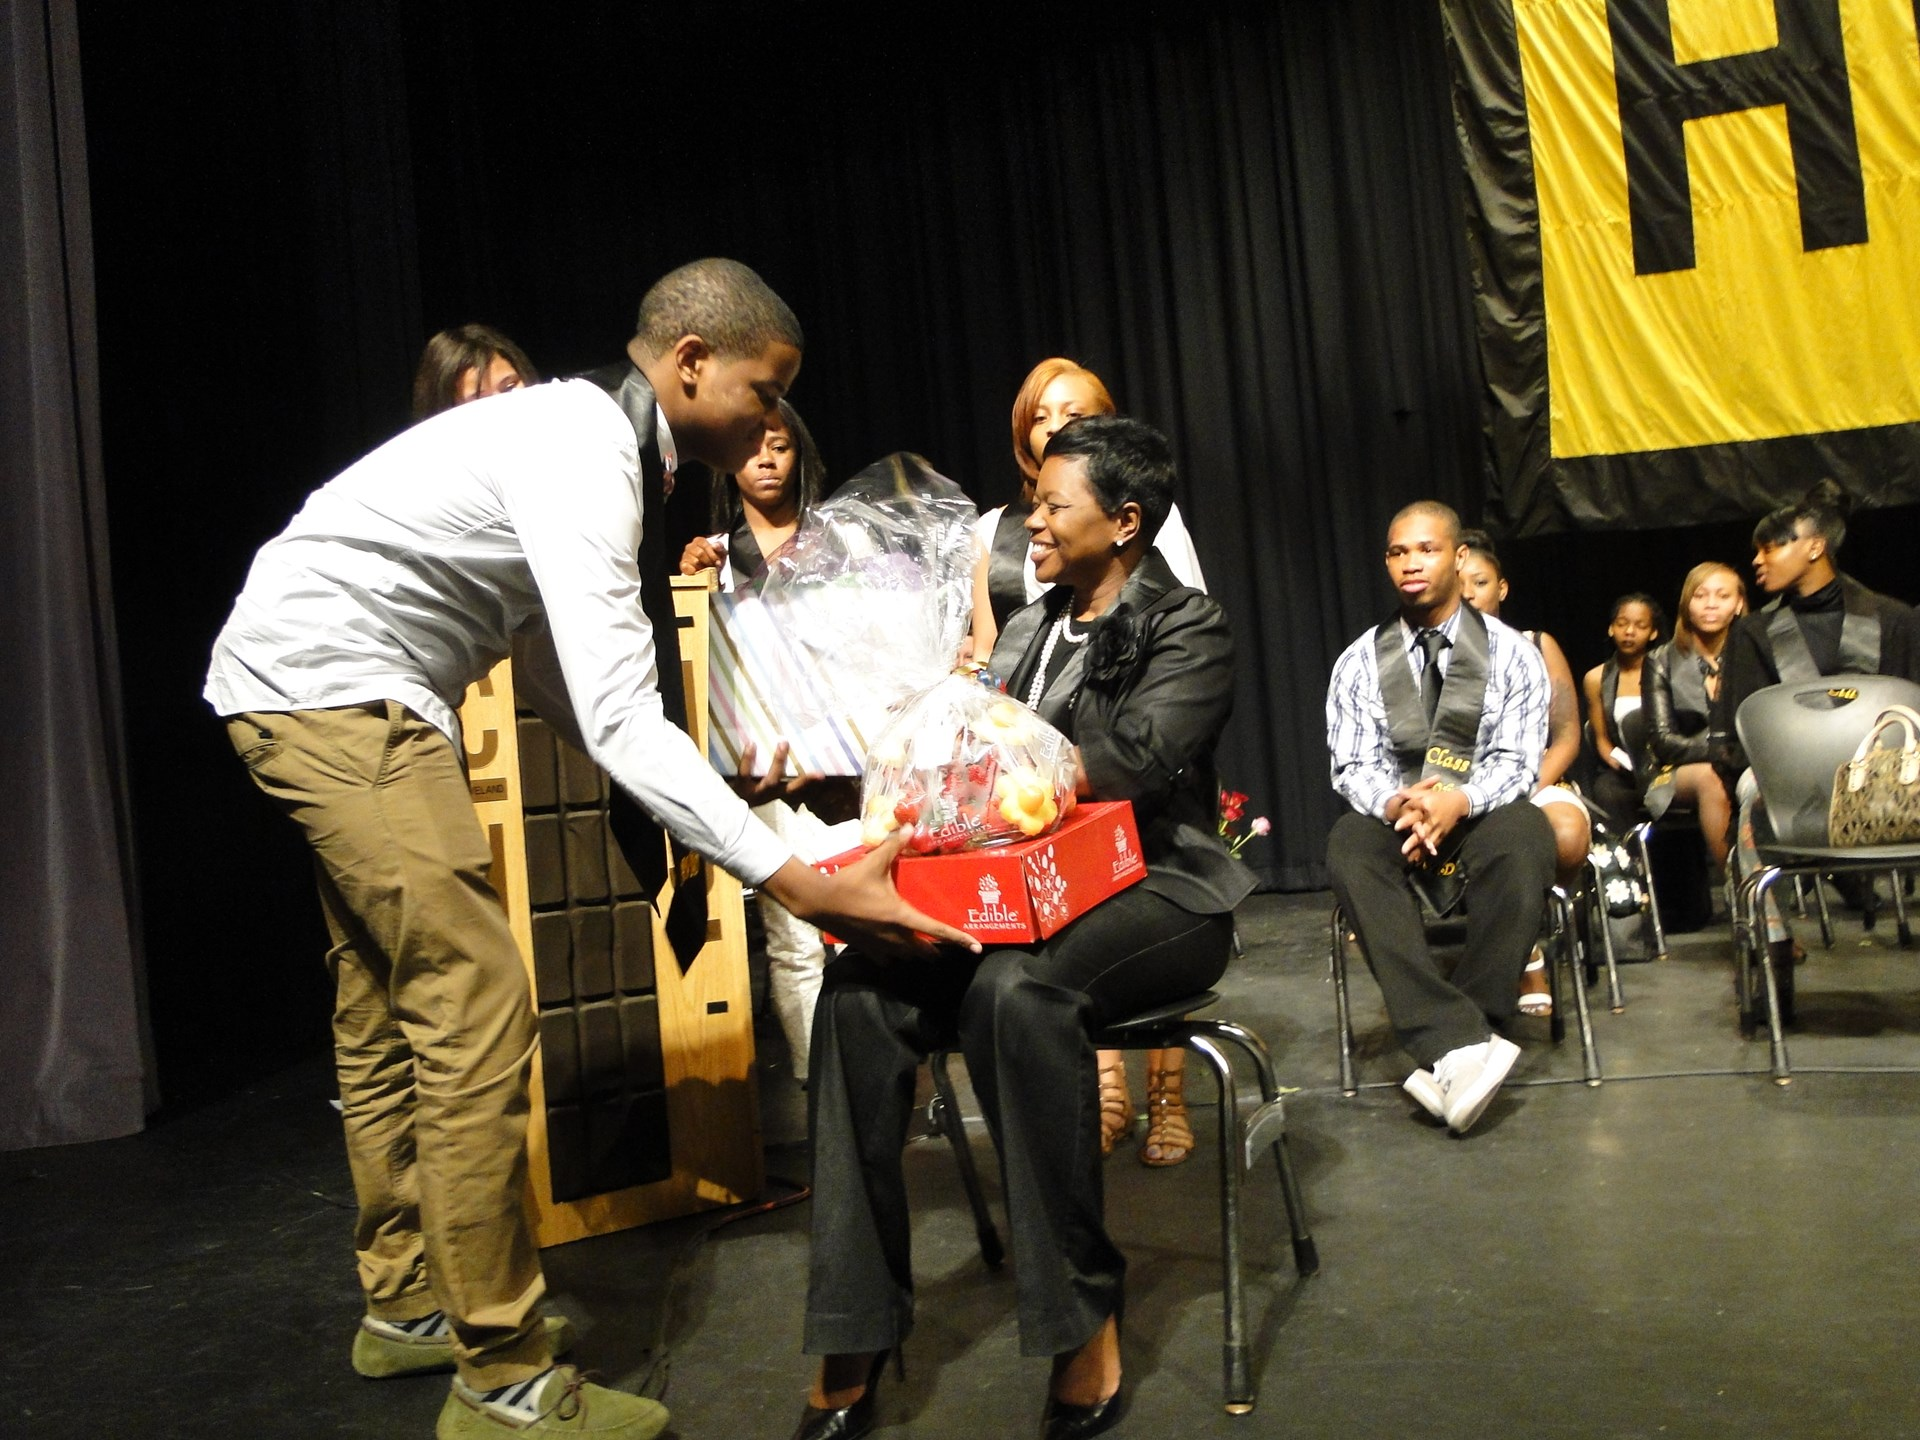 Students present gifts to Ms. Washington